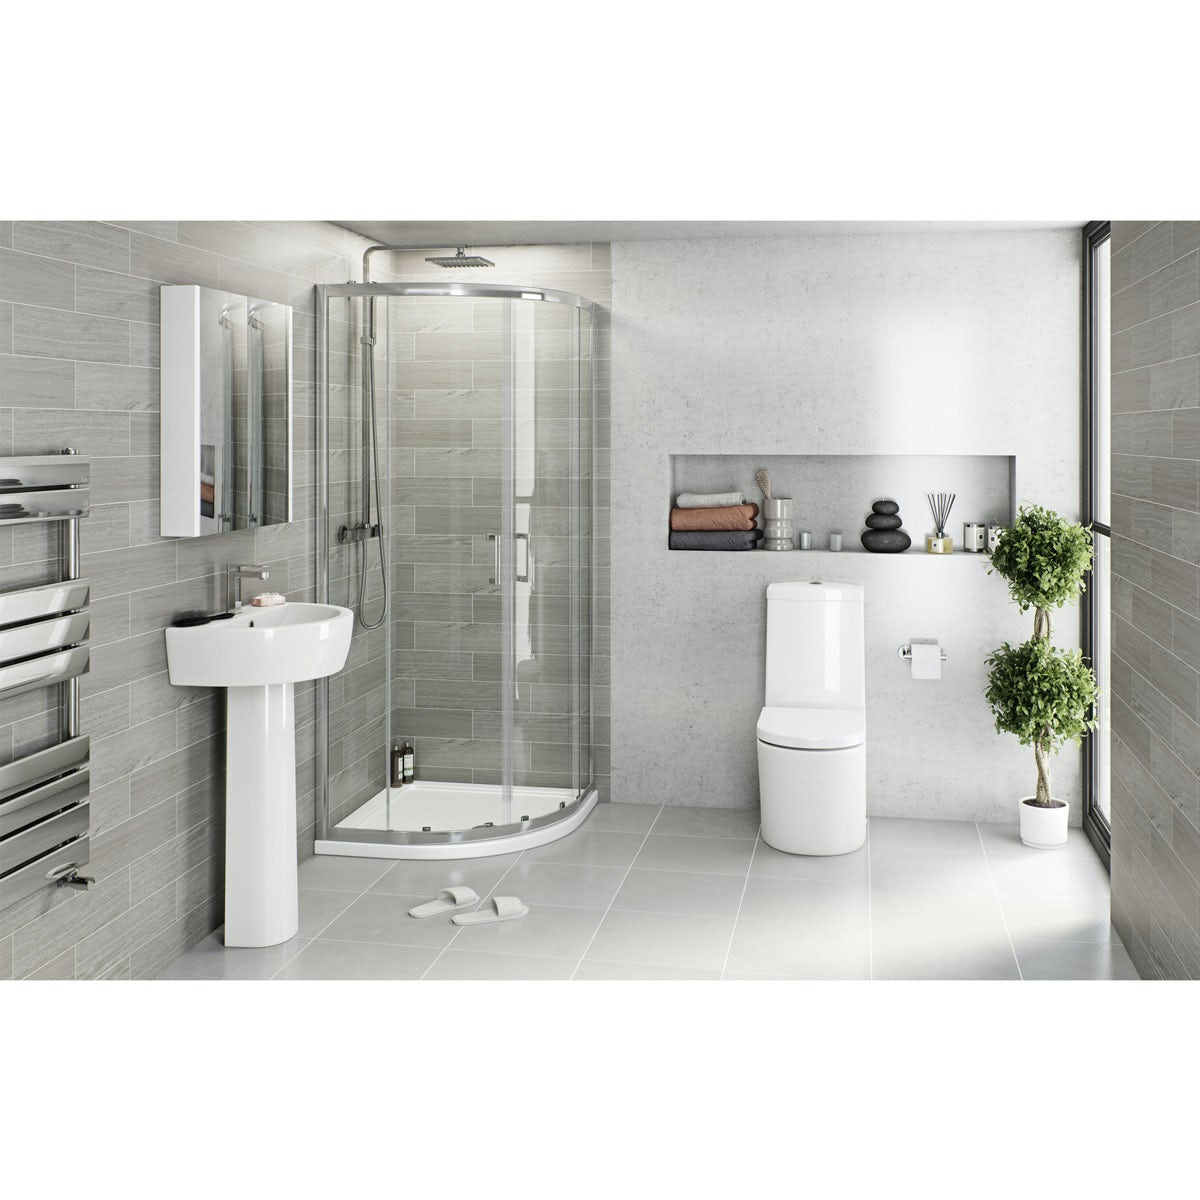 Mode Tate quadrant complete bathroom package